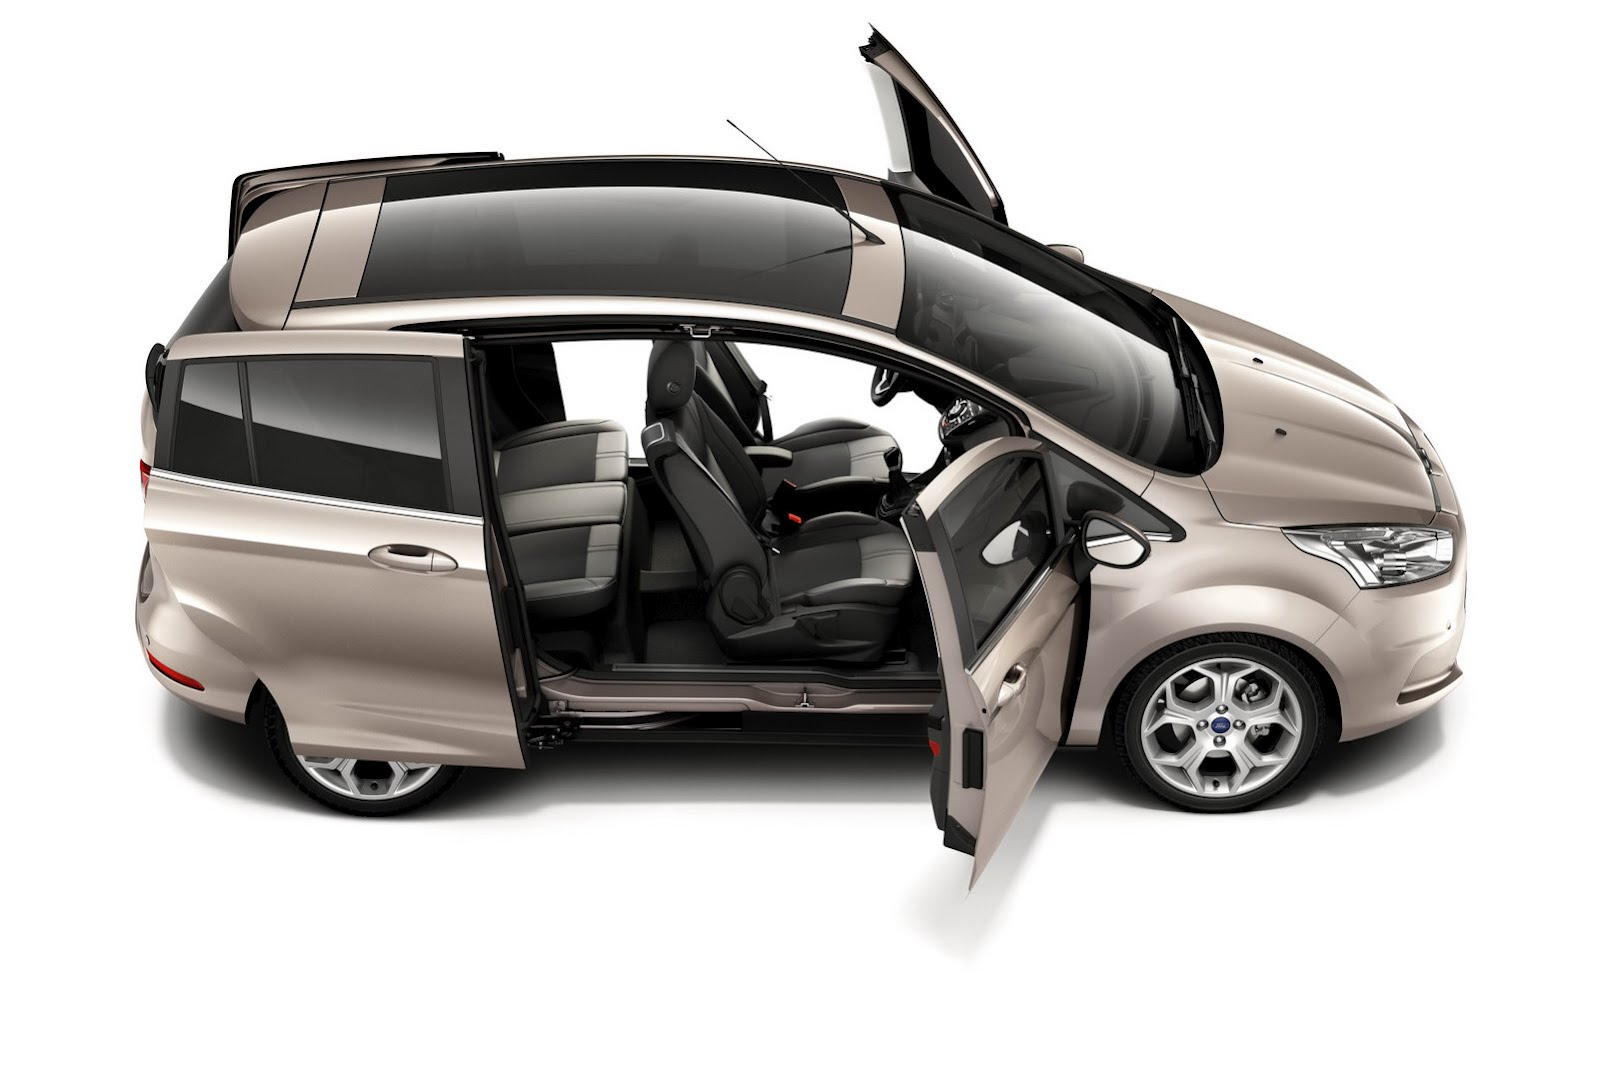 2012 ford b max easy access door system revealed autoevolution. Black Bedroom Furniture Sets. Home Design Ideas